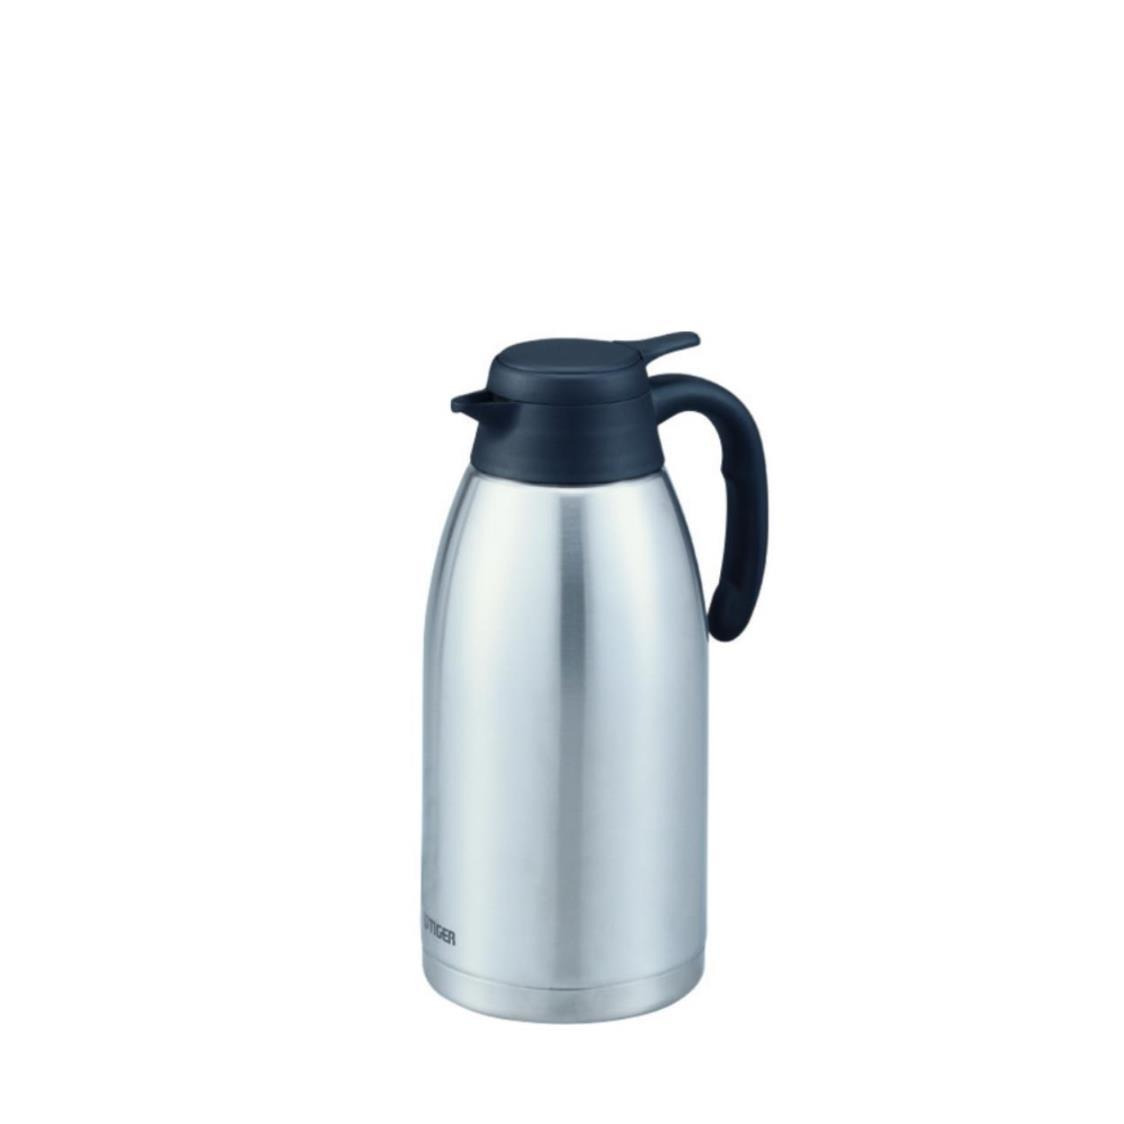 Stainless Steel Handy Jug PWL-A202 2L